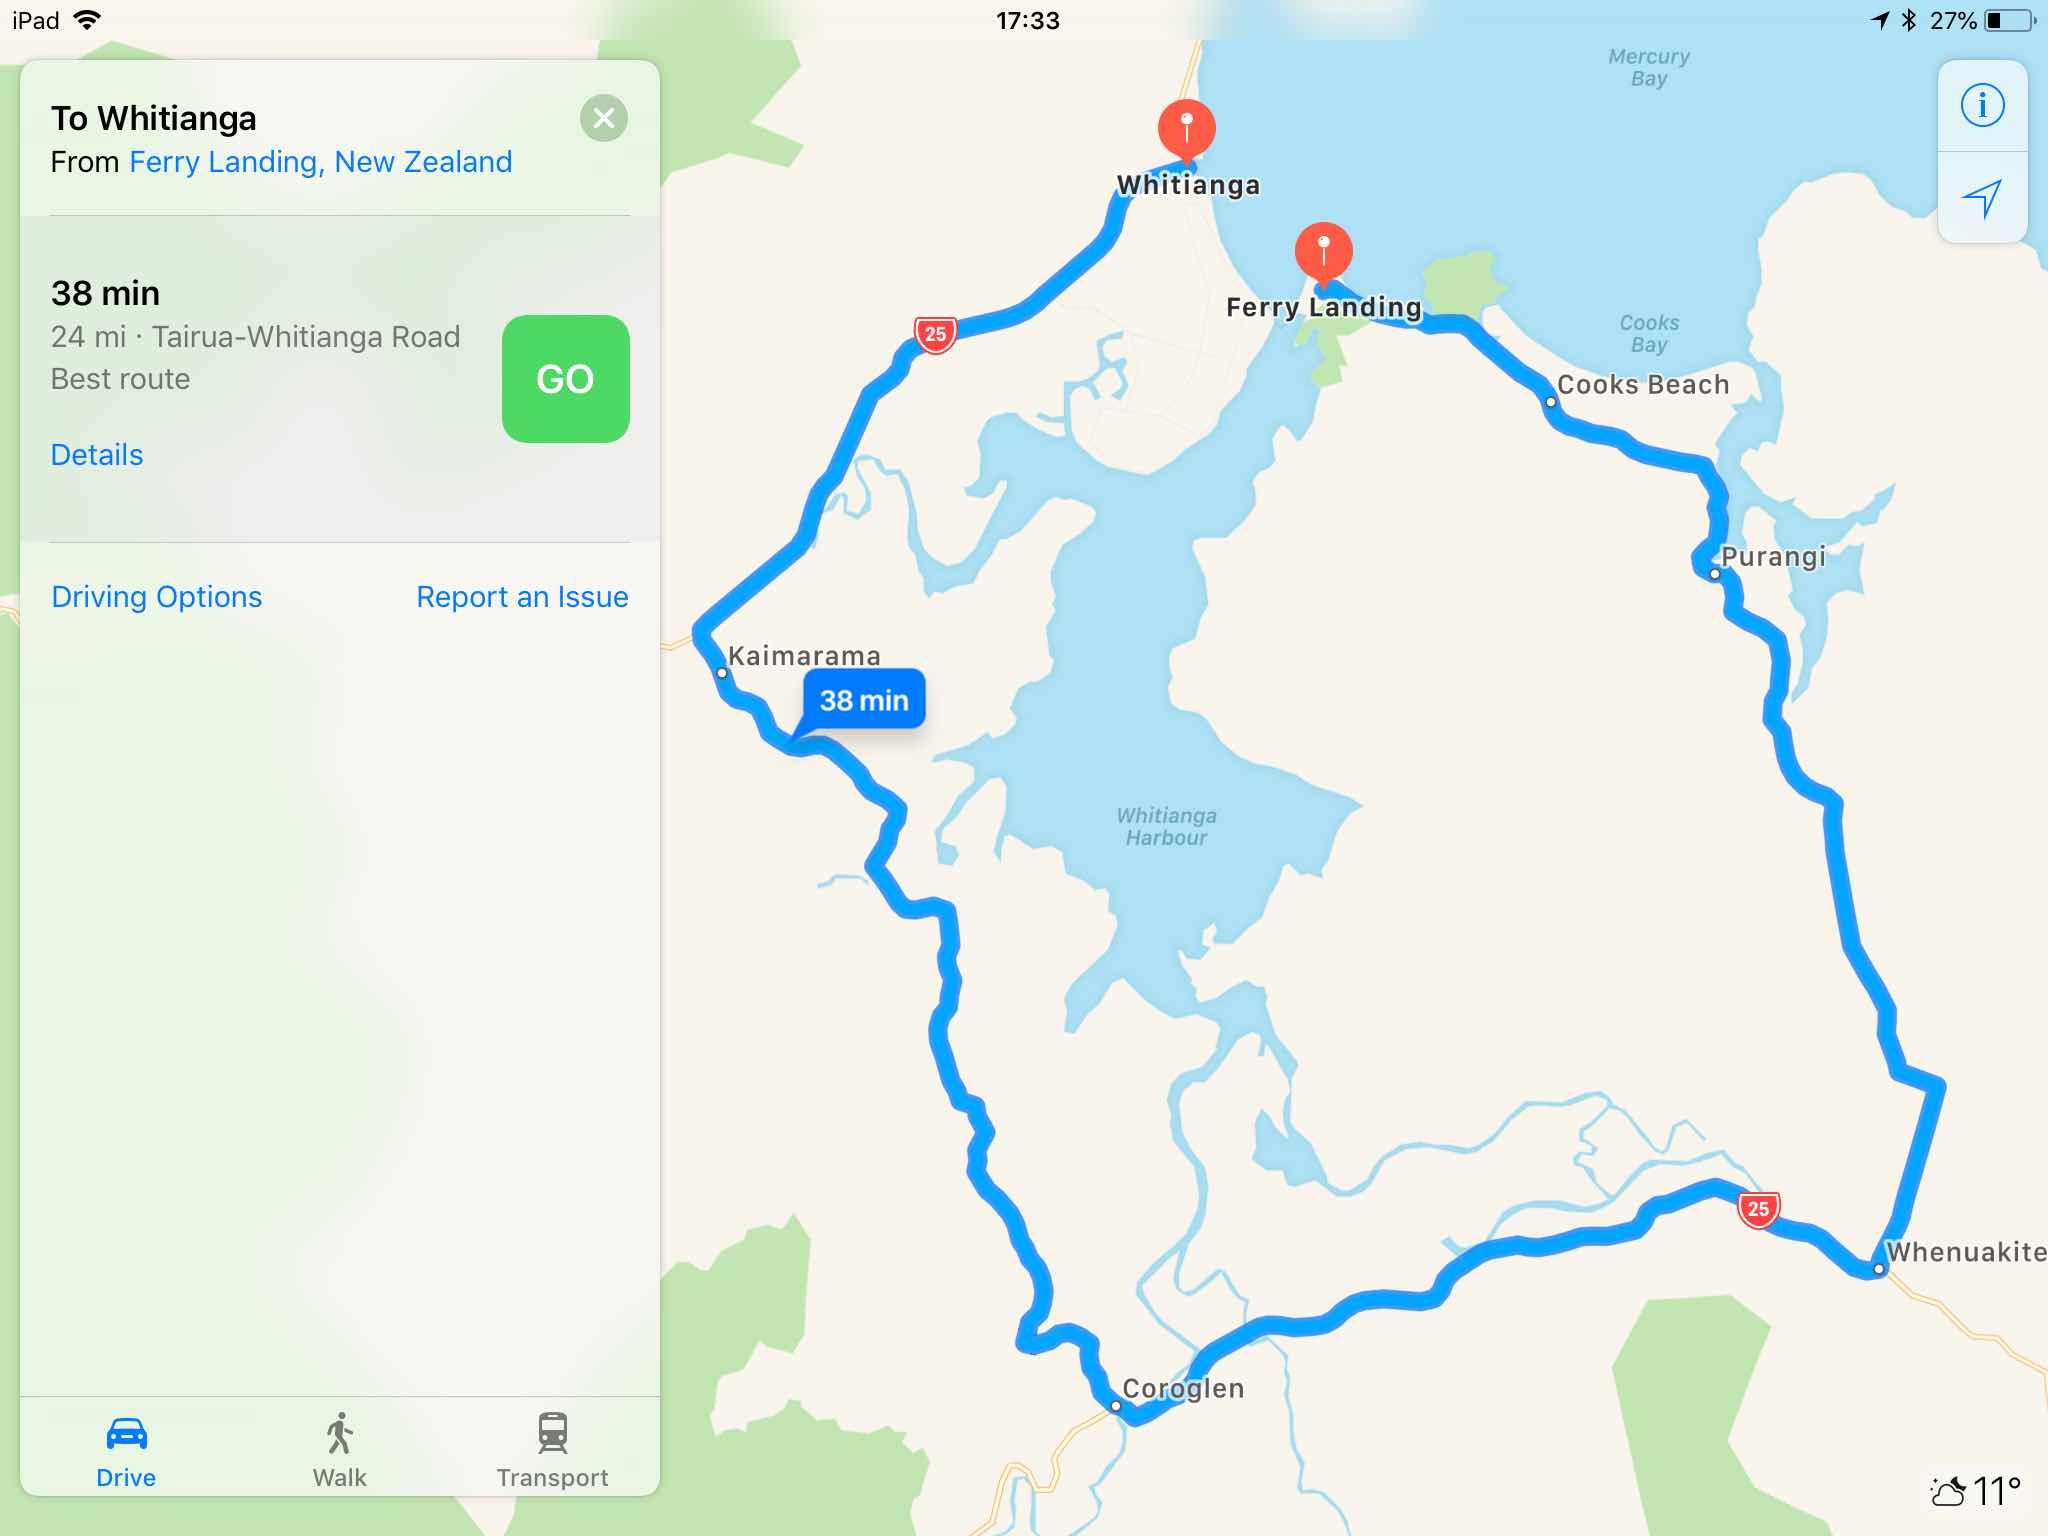 Whitianga to Ferry Landing